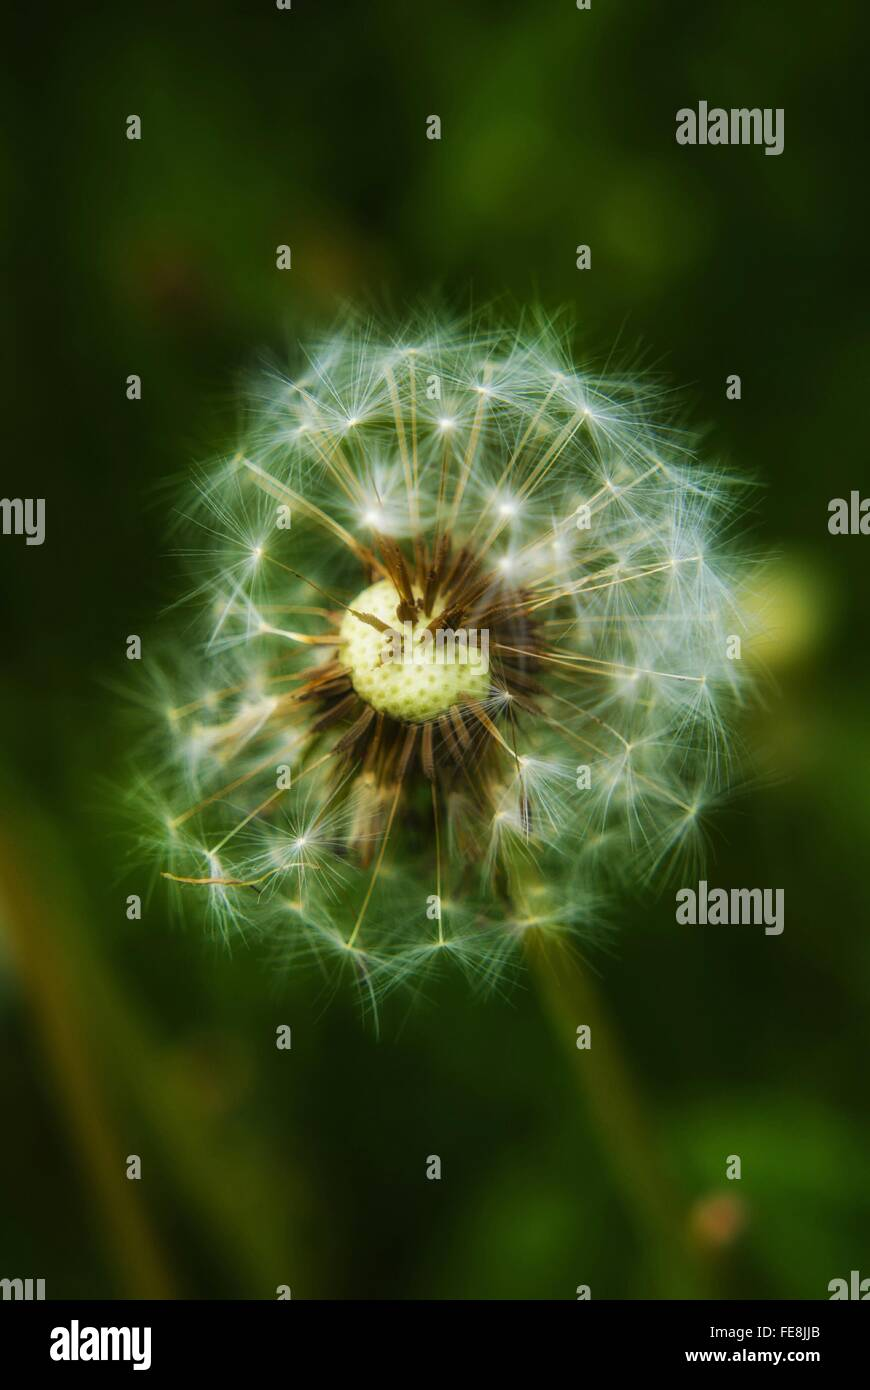 Close-Up Of Dandelion Blooming Outdoors - Stock Image